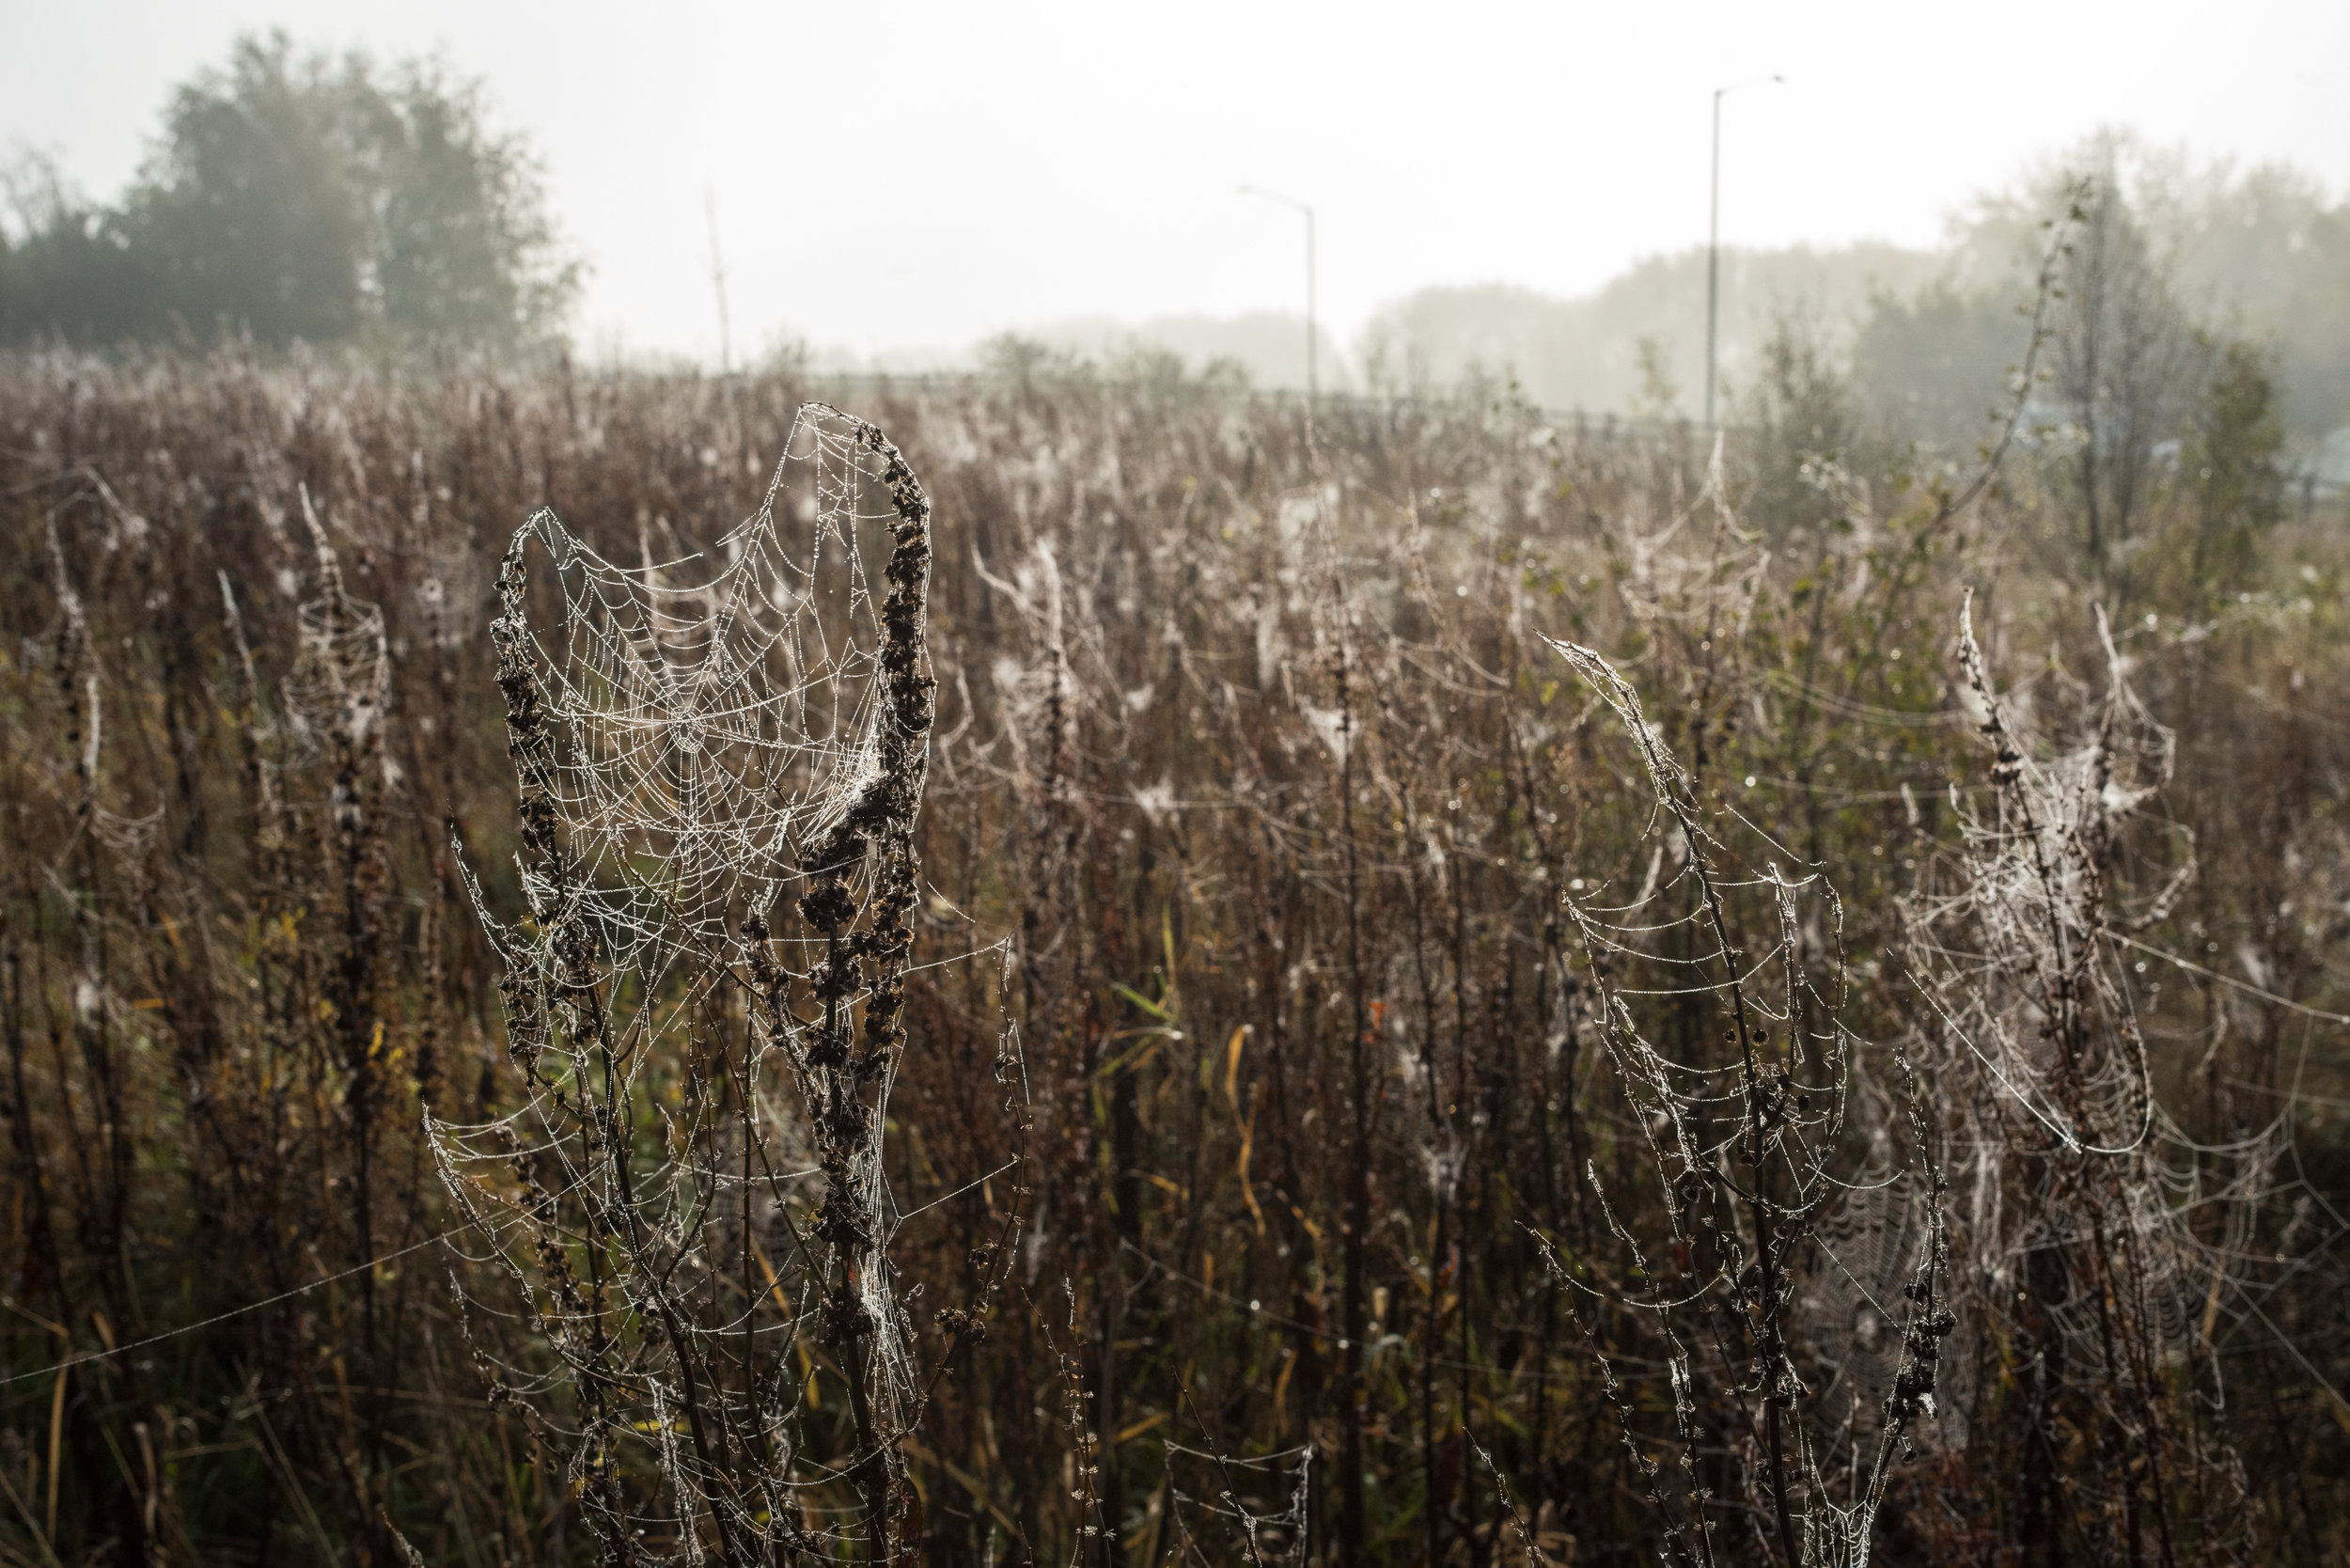 Field Of Spiderwebs, Stratford-upon-Avon, England 2018